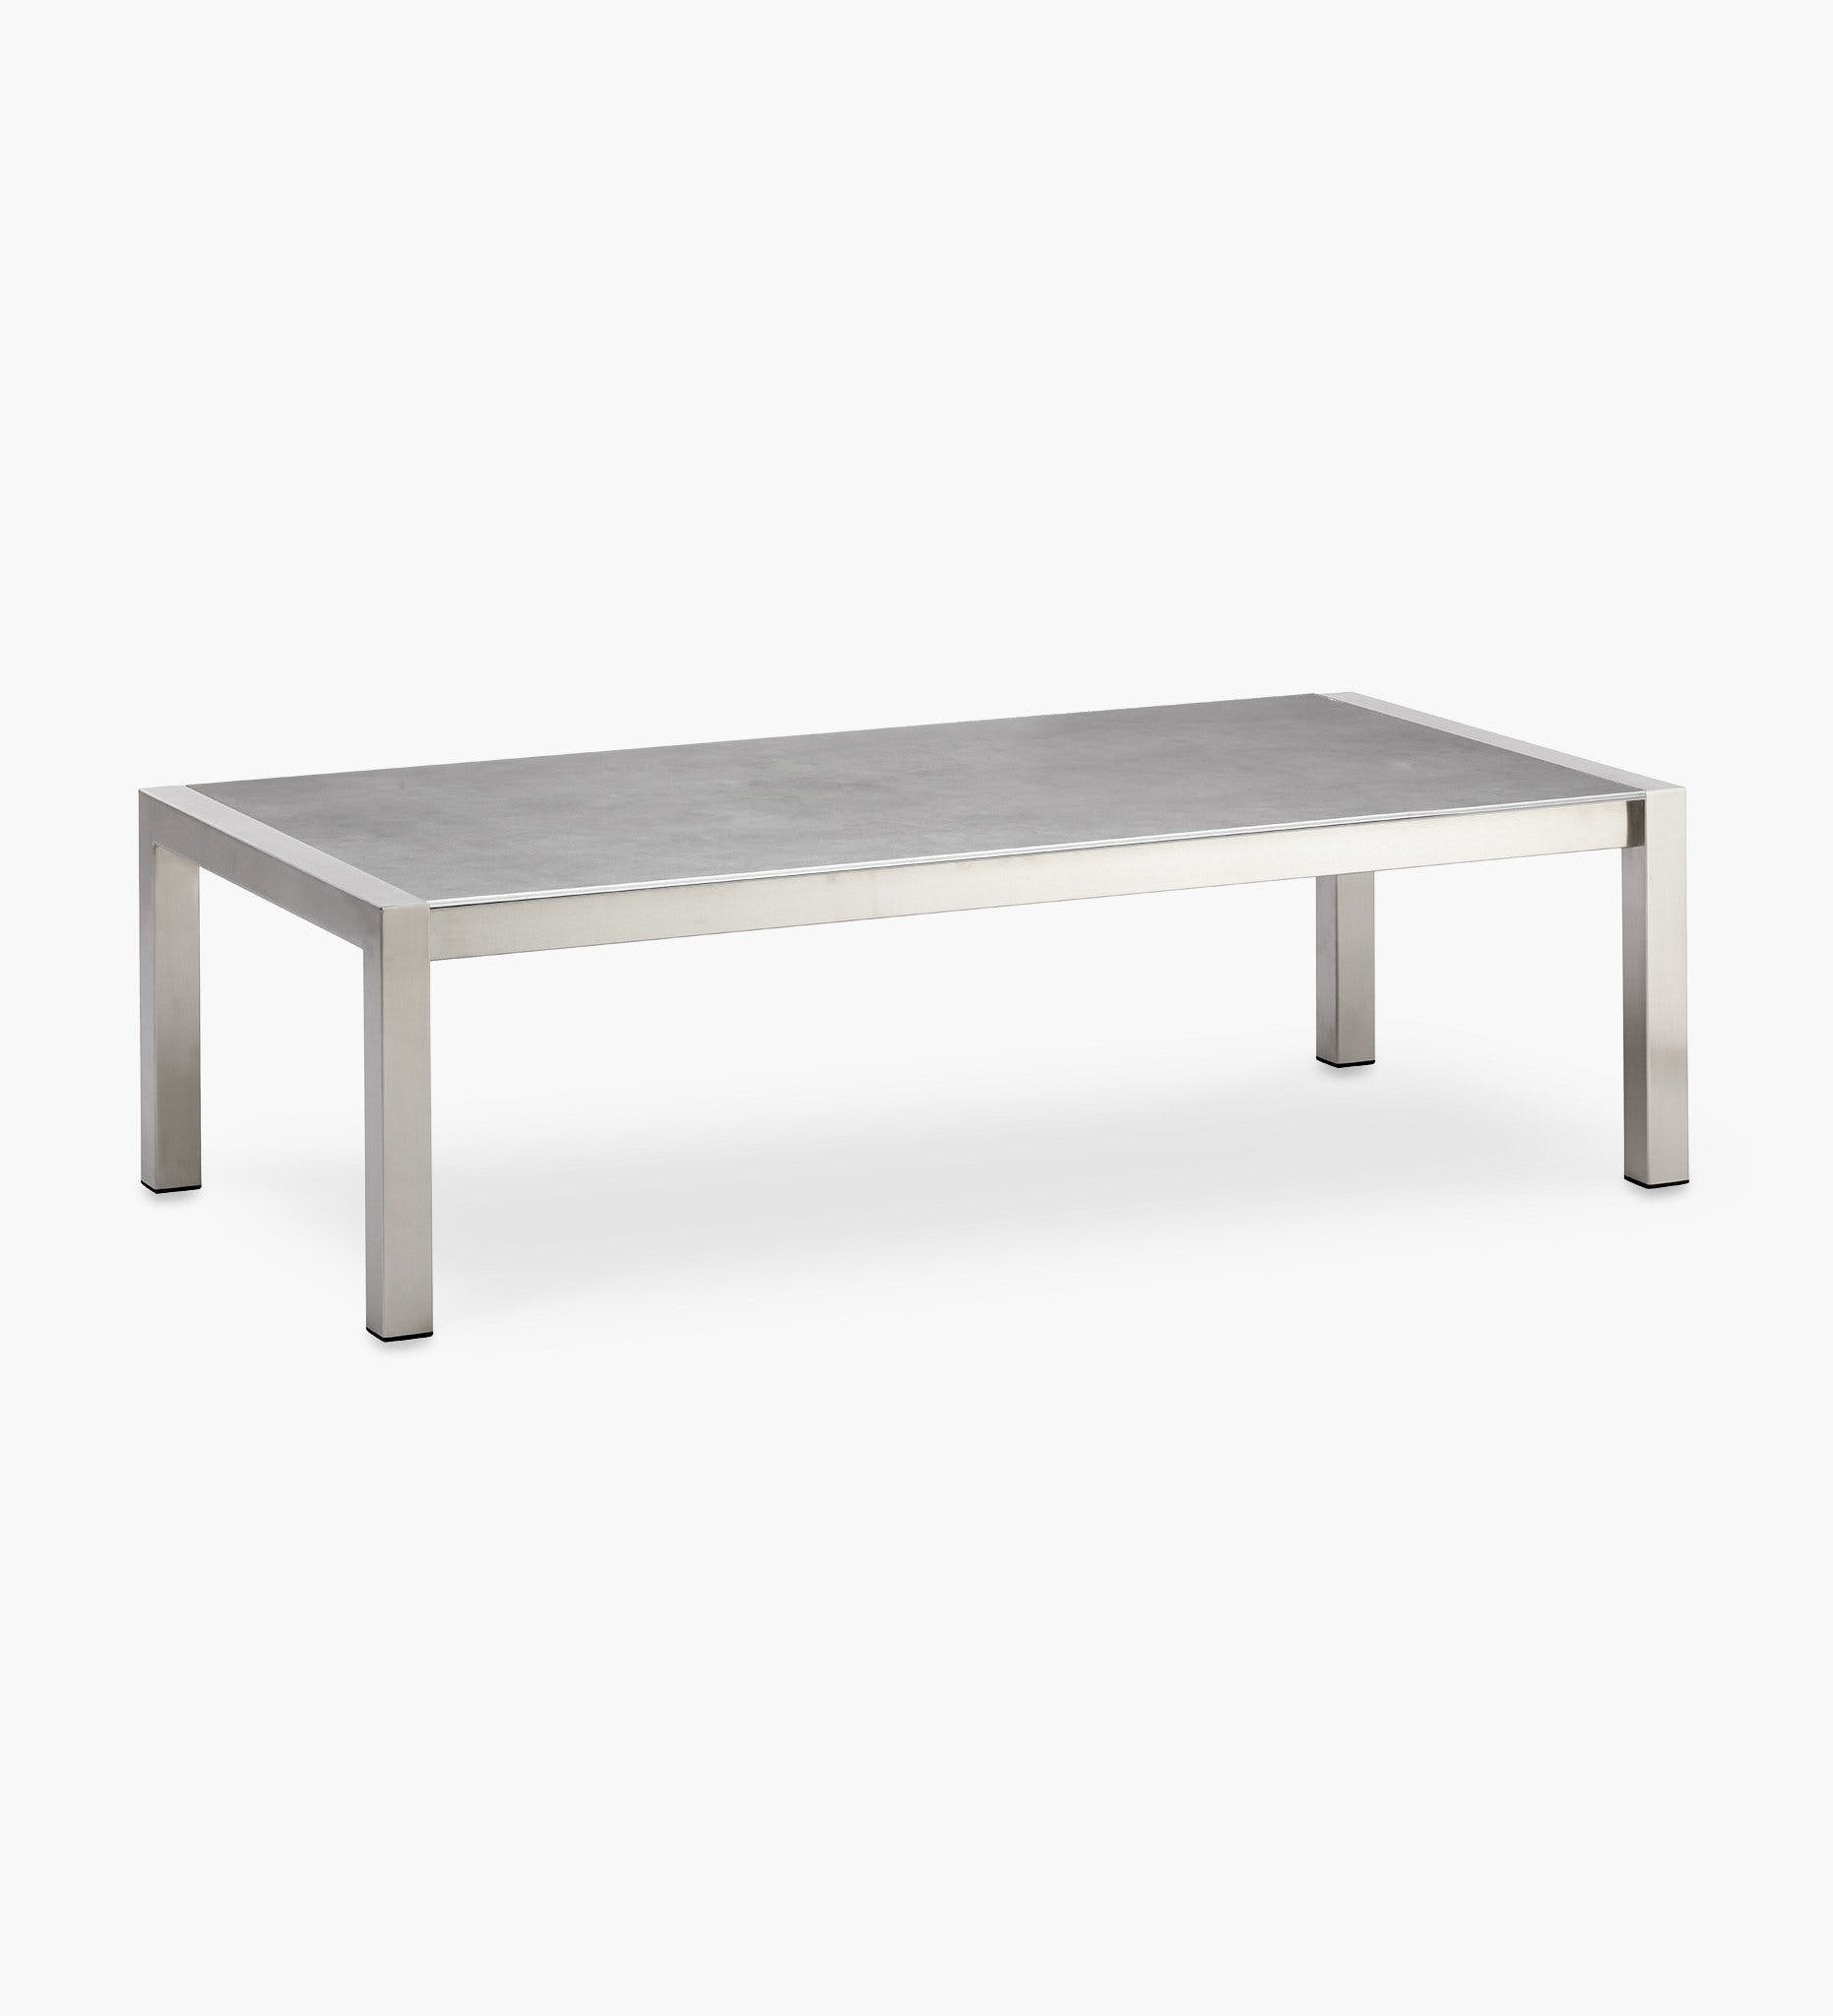 Share Coffee Table Beton Ceramic